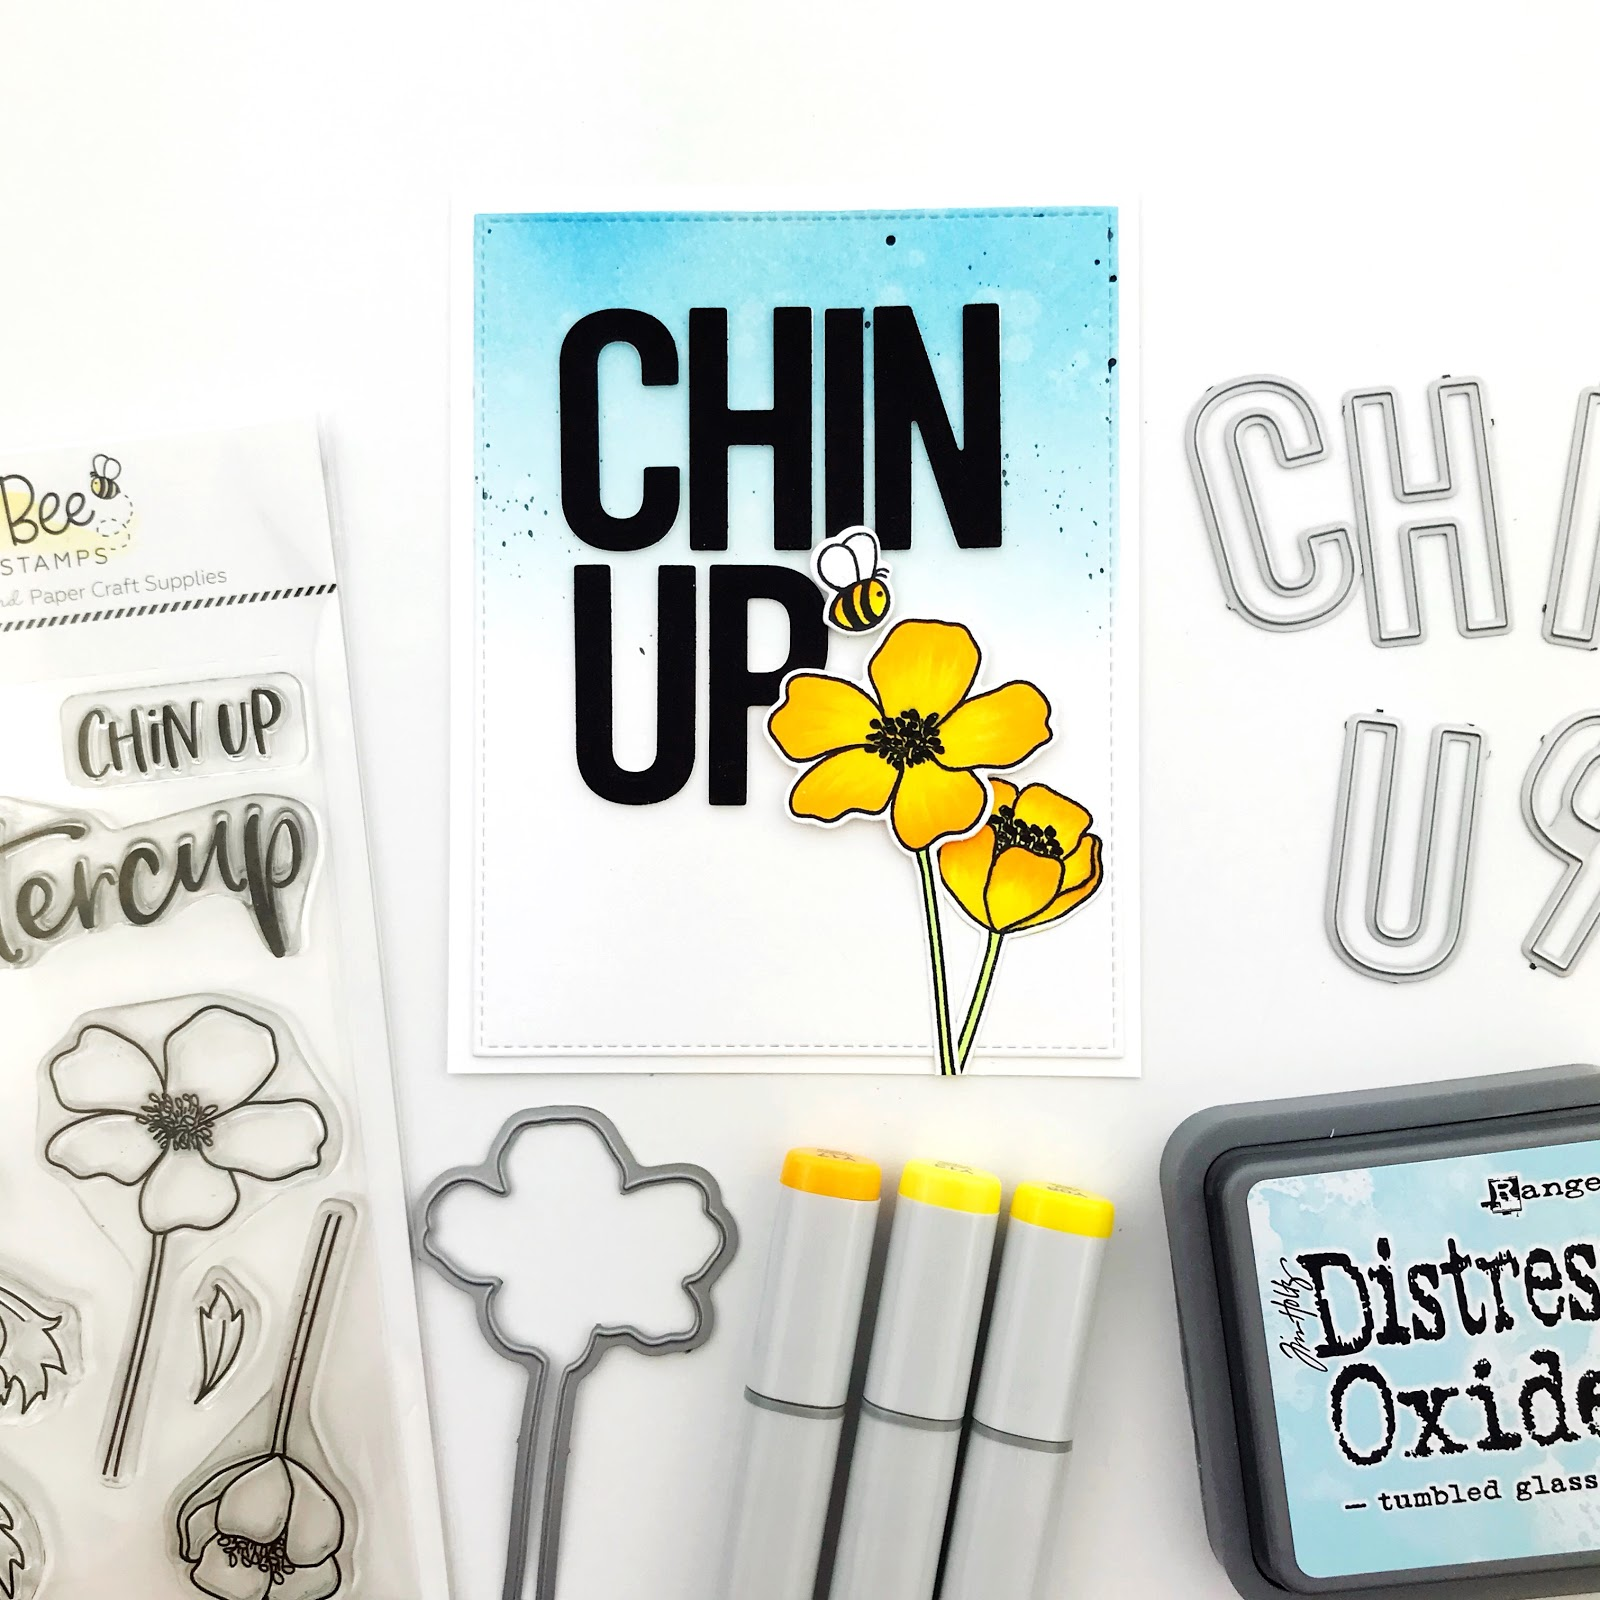 Honey Bee Sneak Peeks Continue Today I Want To Show You Two Sets Im Super Excited AboutBee Bold Alpha Dies And The Chin Up Buttercup Stamps